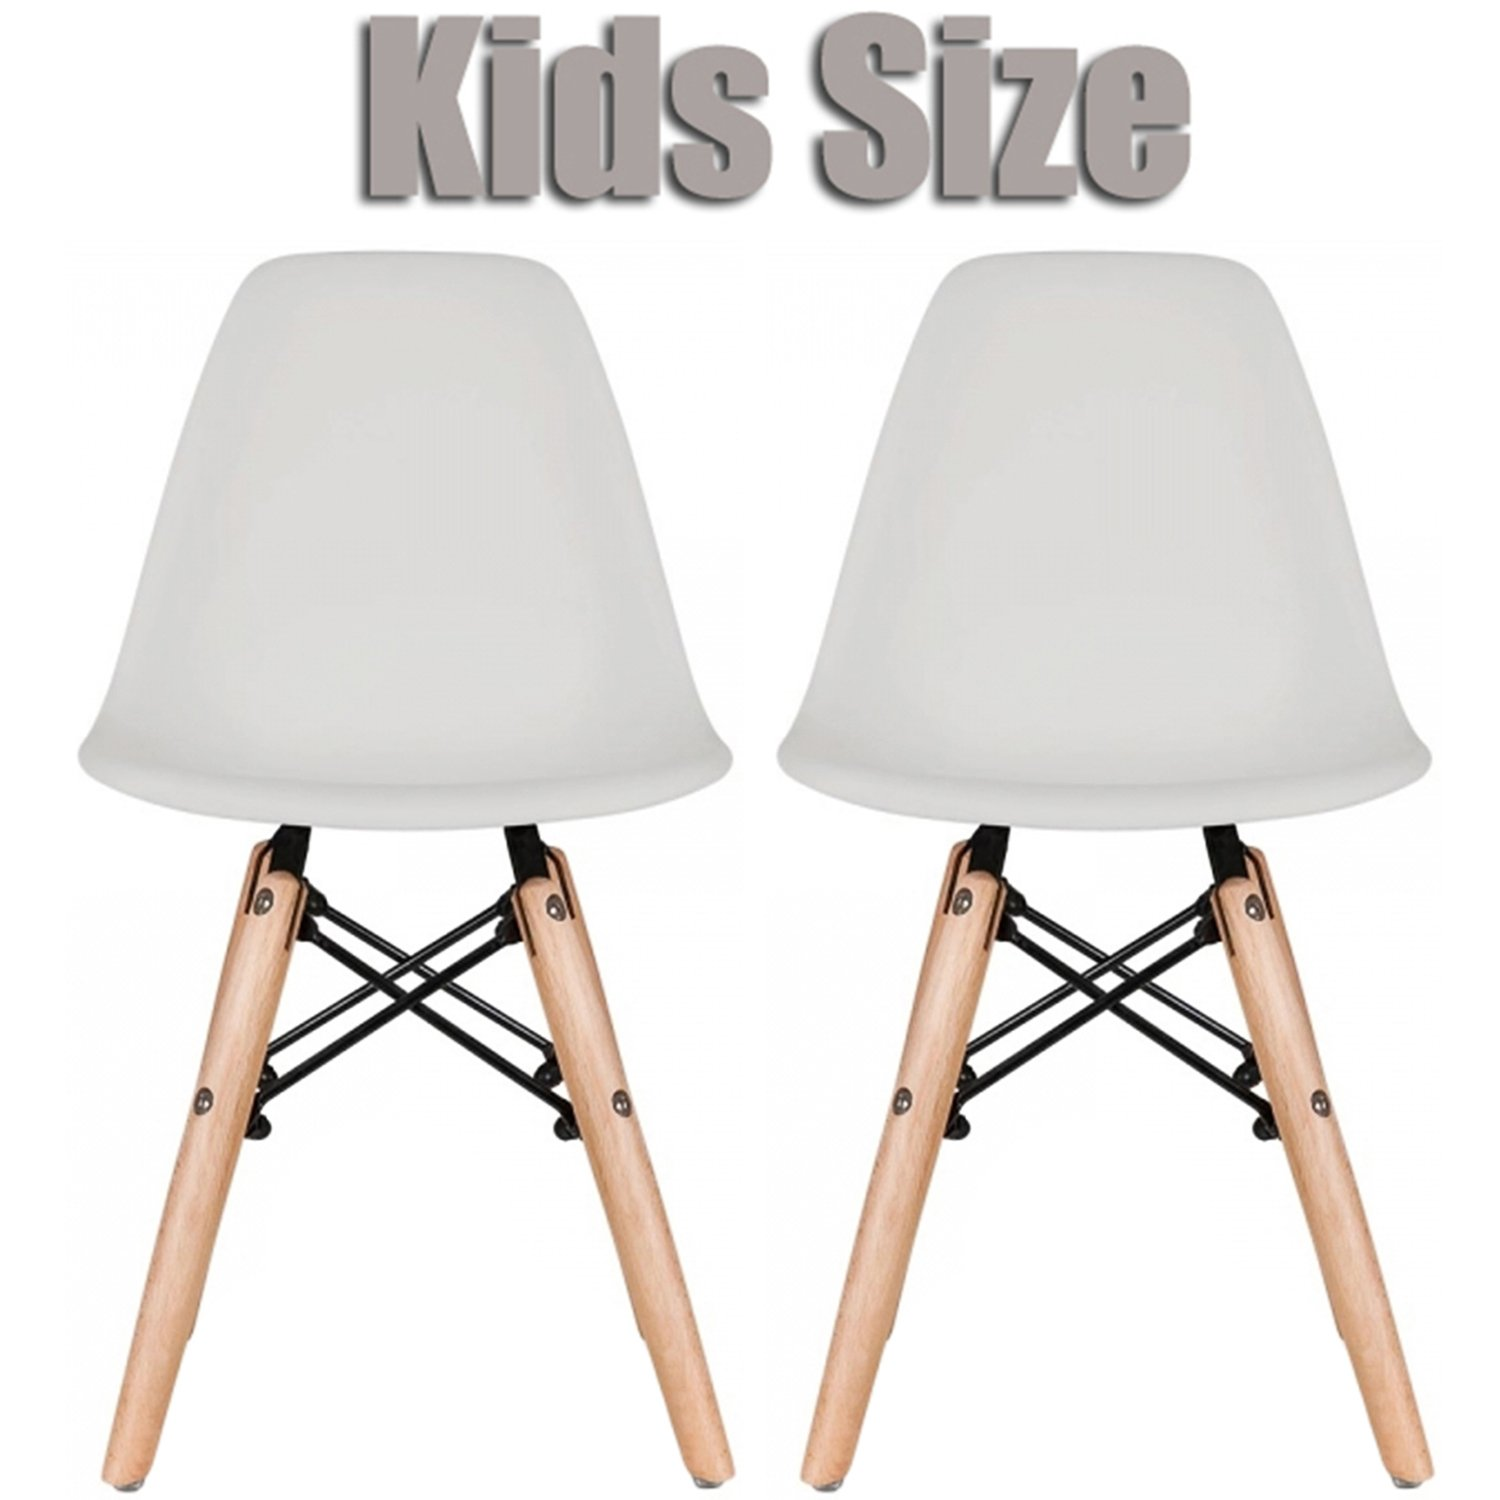 2xhome Set of Two (2) - Kids Size Eames Side Chairs Eames Chairs Natural Wood Wooden Legs Eiffel Childrens Room Chairs No Arm Arms Armless Molded Plastic Seat Dowel Leg (Grey)